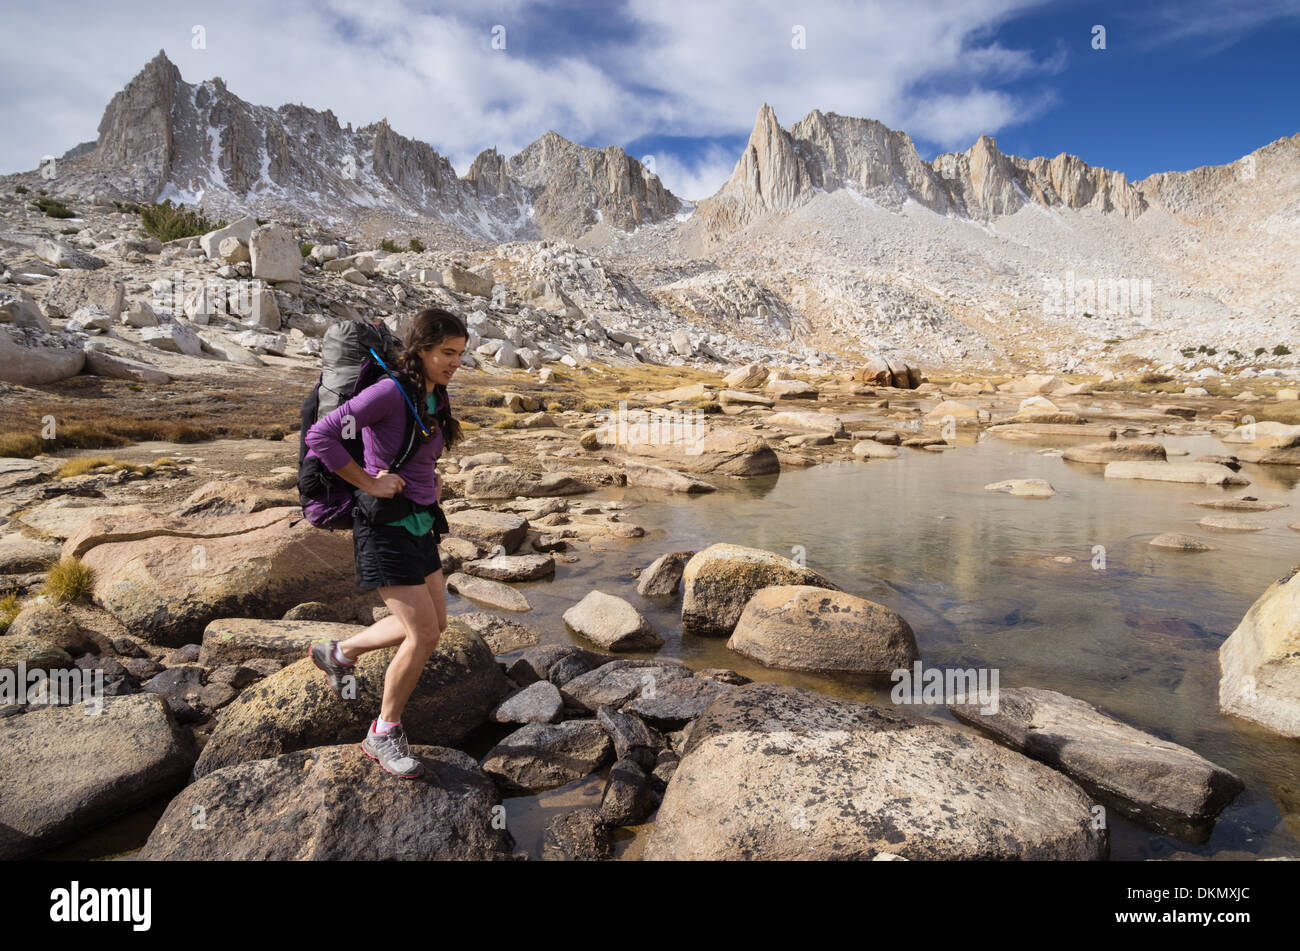 woman backpacker in the Sierra Nevada mountains - Stock Image